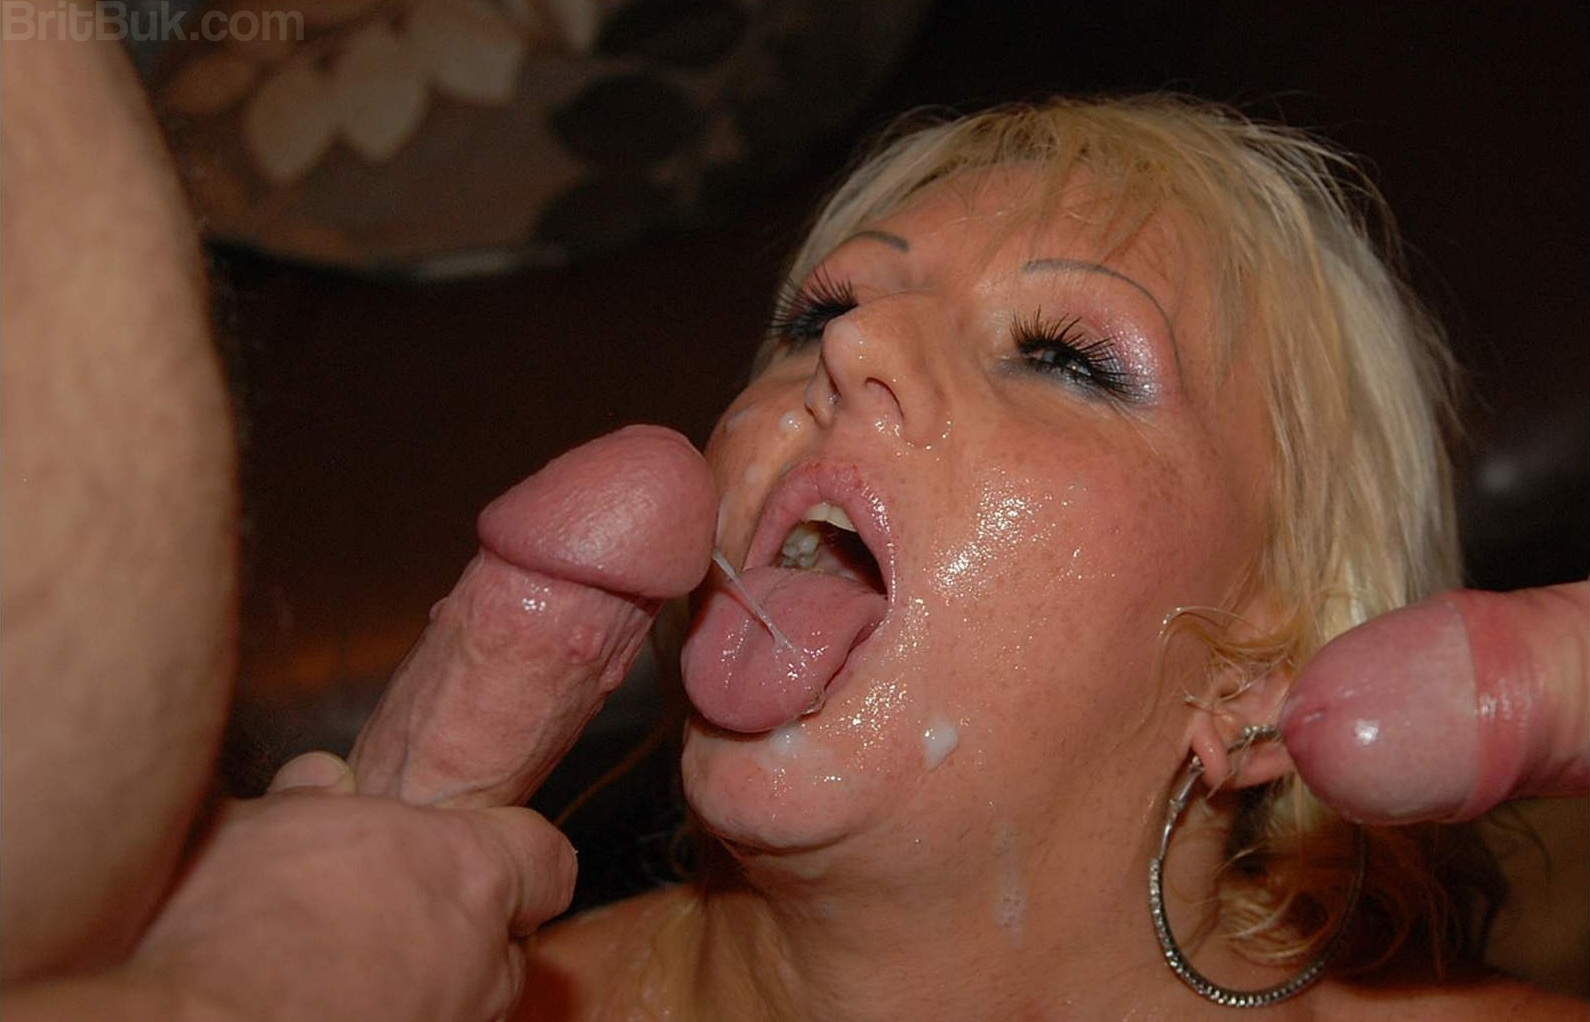 ... Most Incredible British MILFs in Pure Genuine Amateur Bukkake Parties